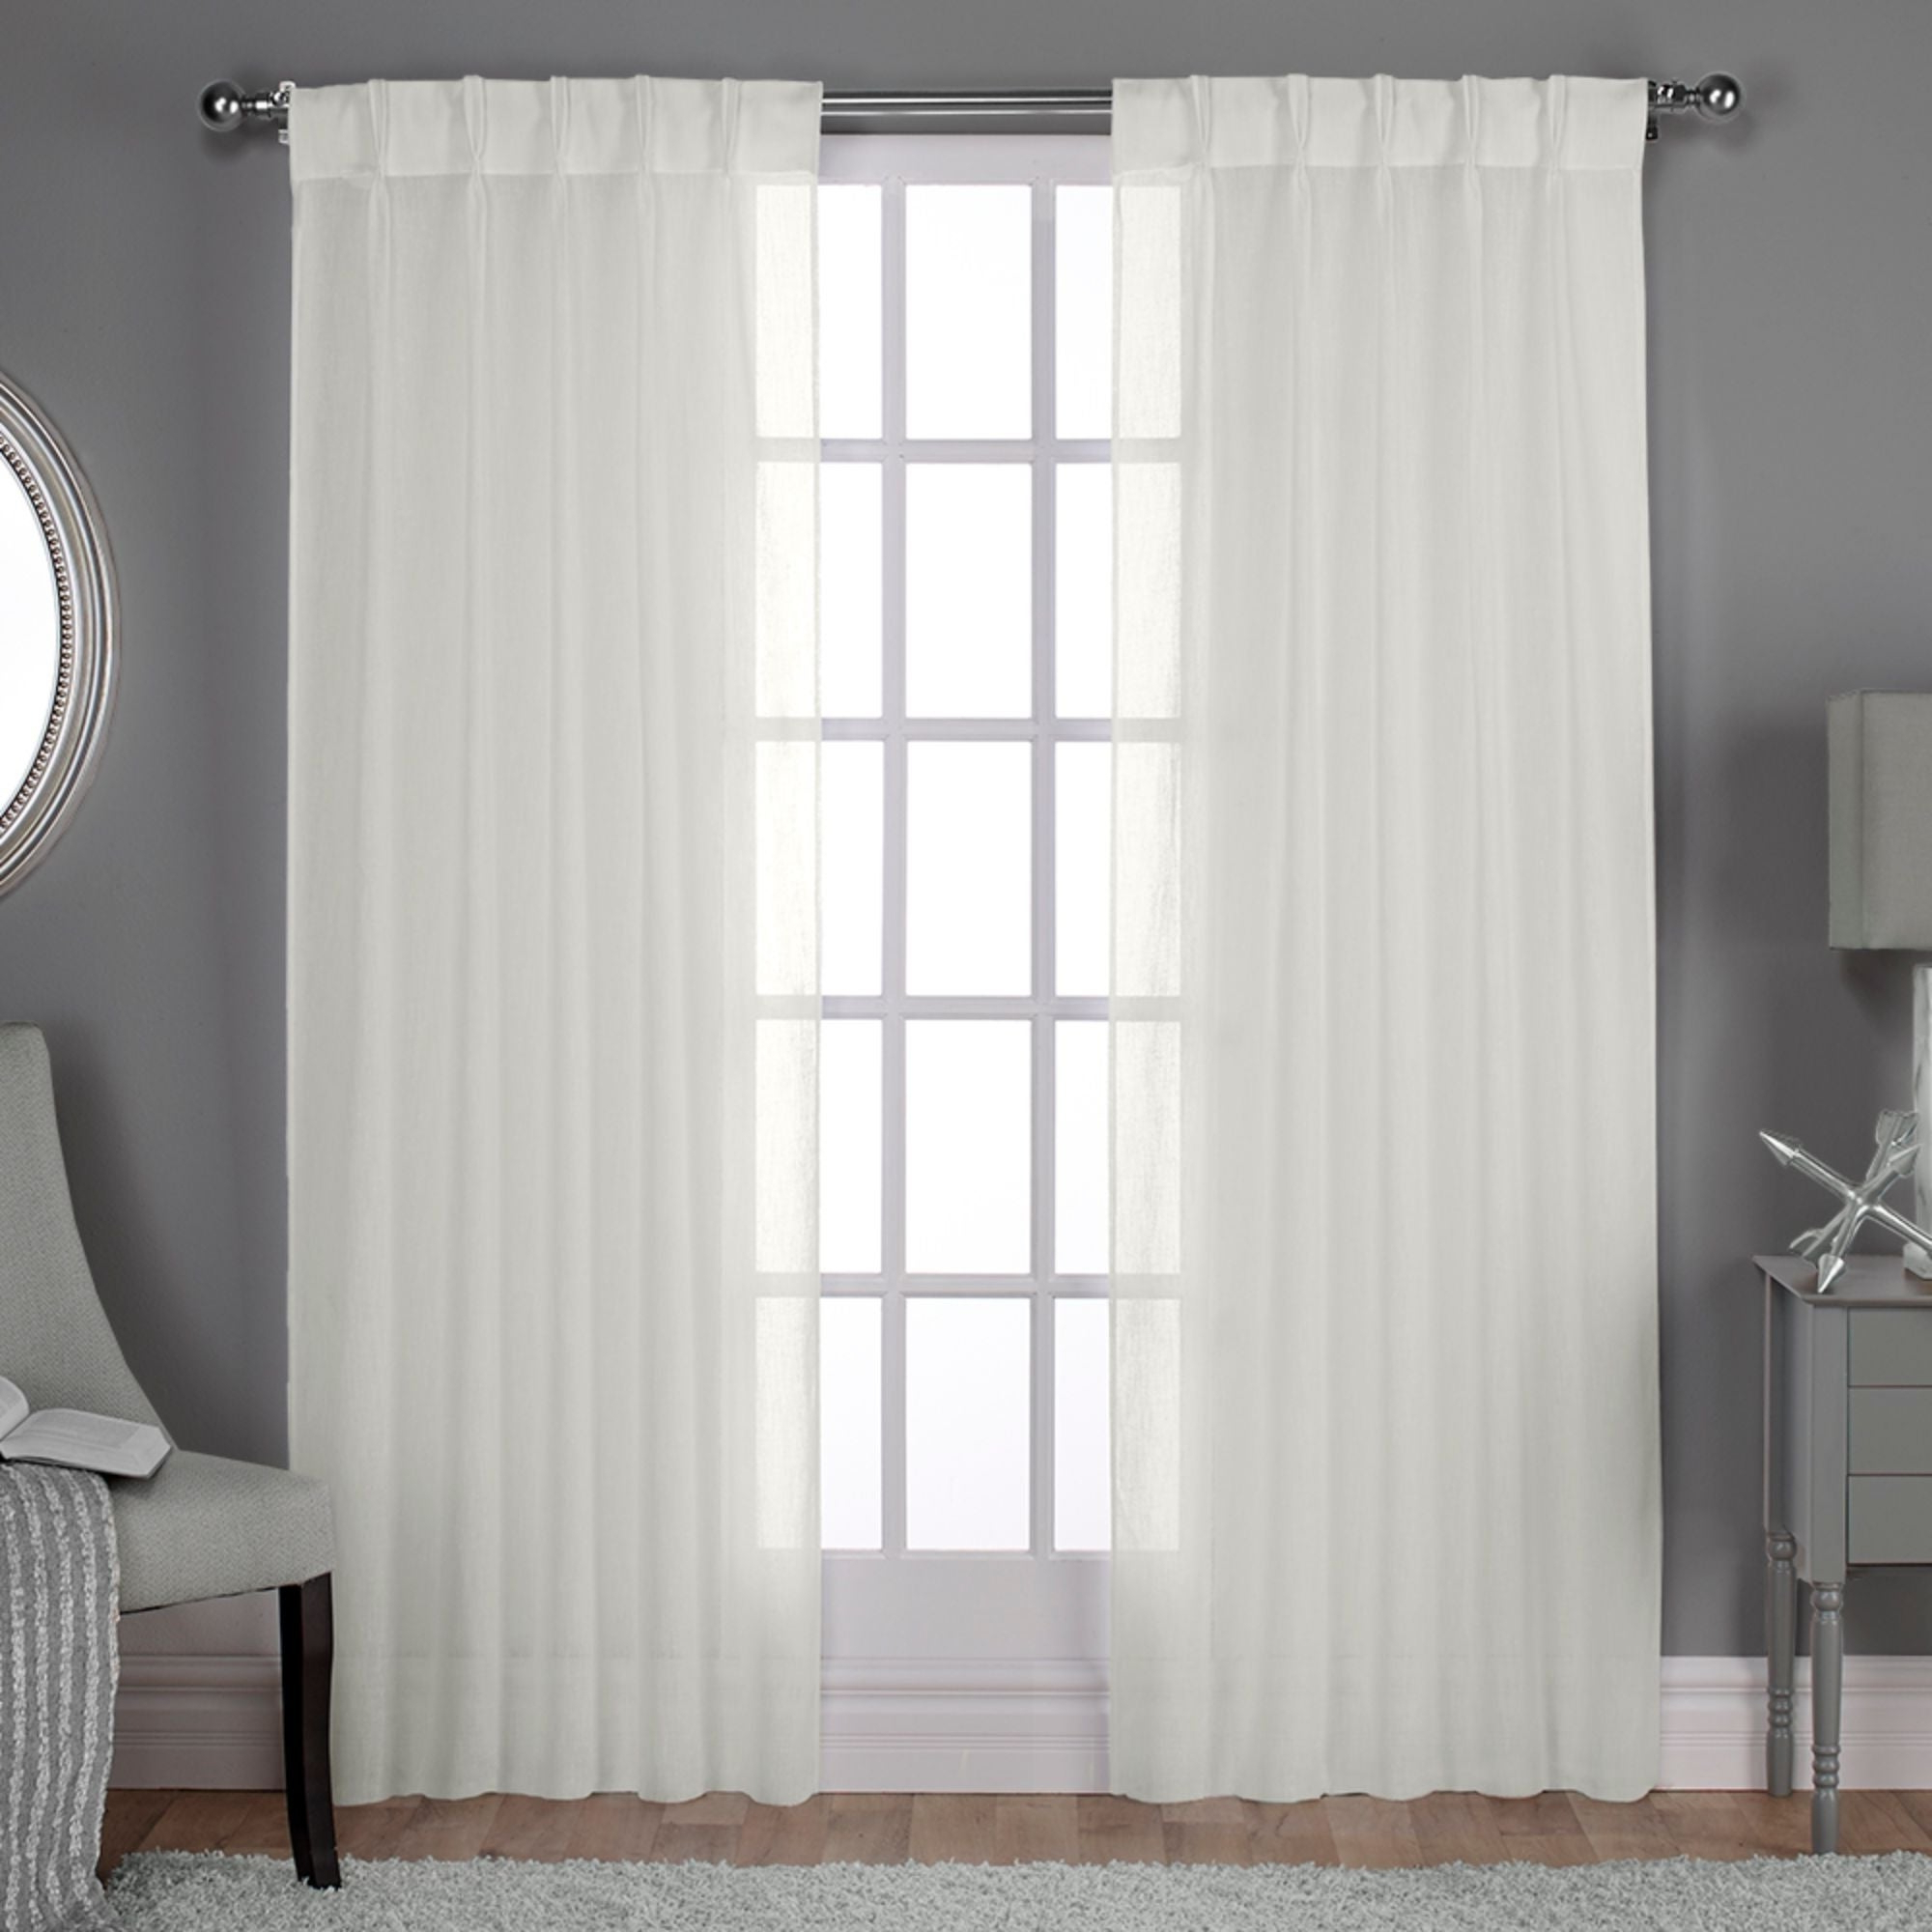 Ati Home Belgian Jacquard Sheer Double Pinch Pleat Top Curtain Panel Pair For Most Up To Date Double Pinch Pleat Top Curtain Panel Pairs (View 1 of 20)